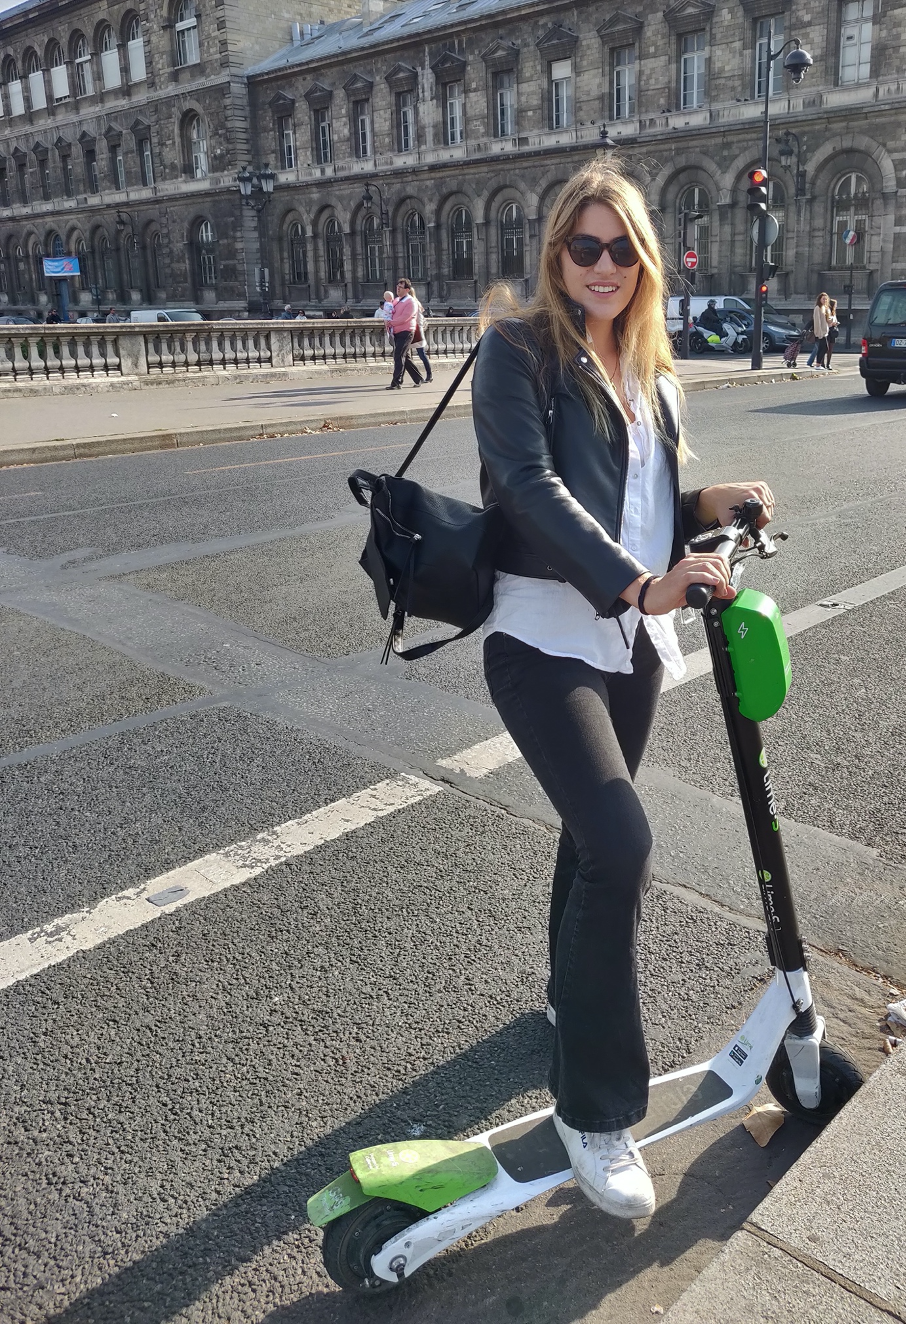 Woman in historic square posing with green and white electric scooter